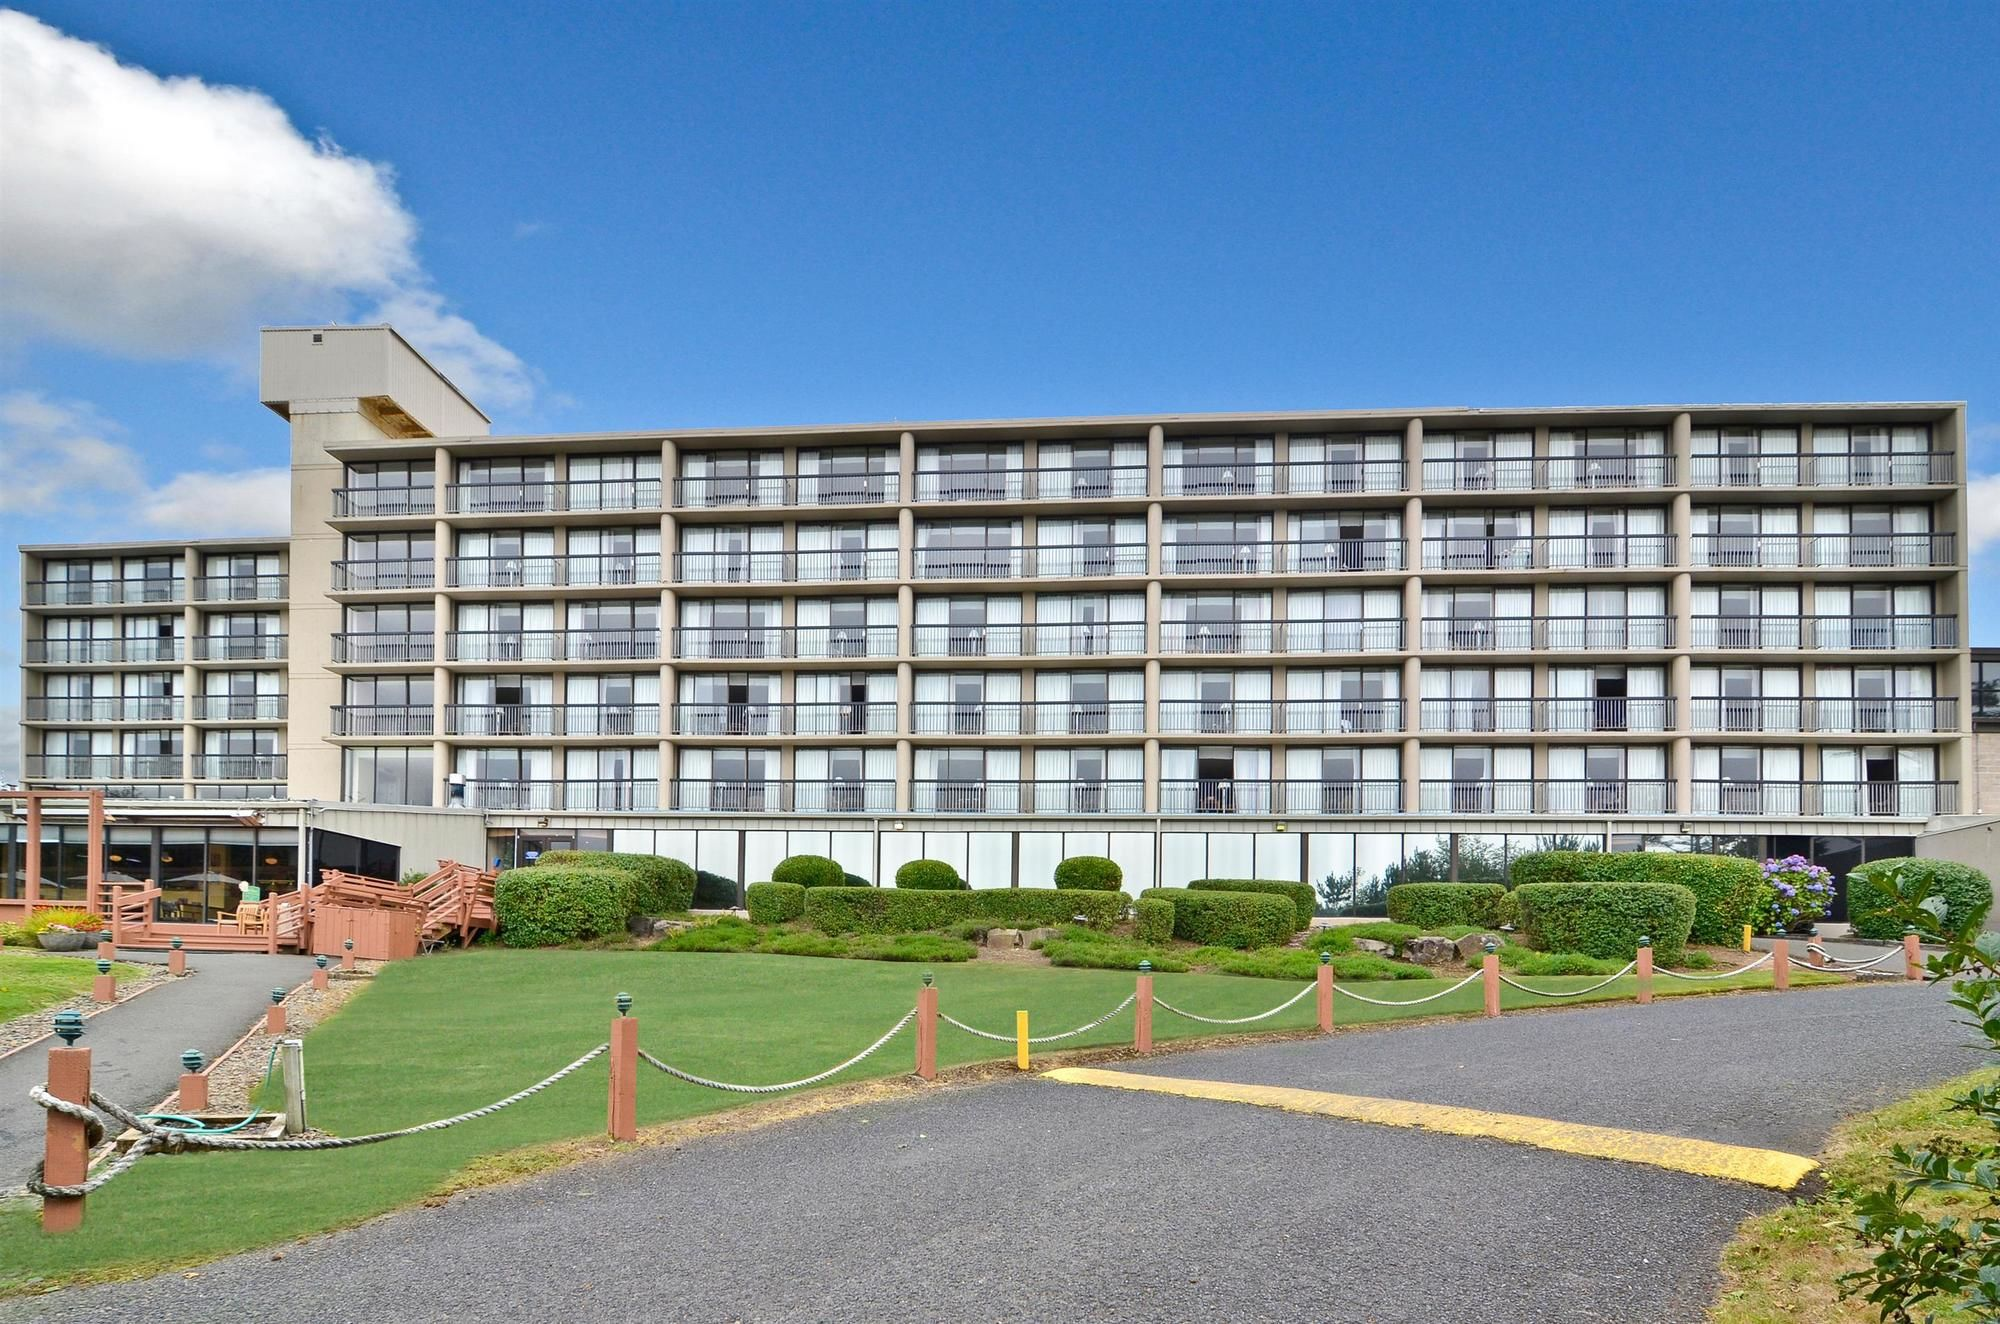 Newport Hotel Coupons for Newport Oregon FreeHotelCoupons